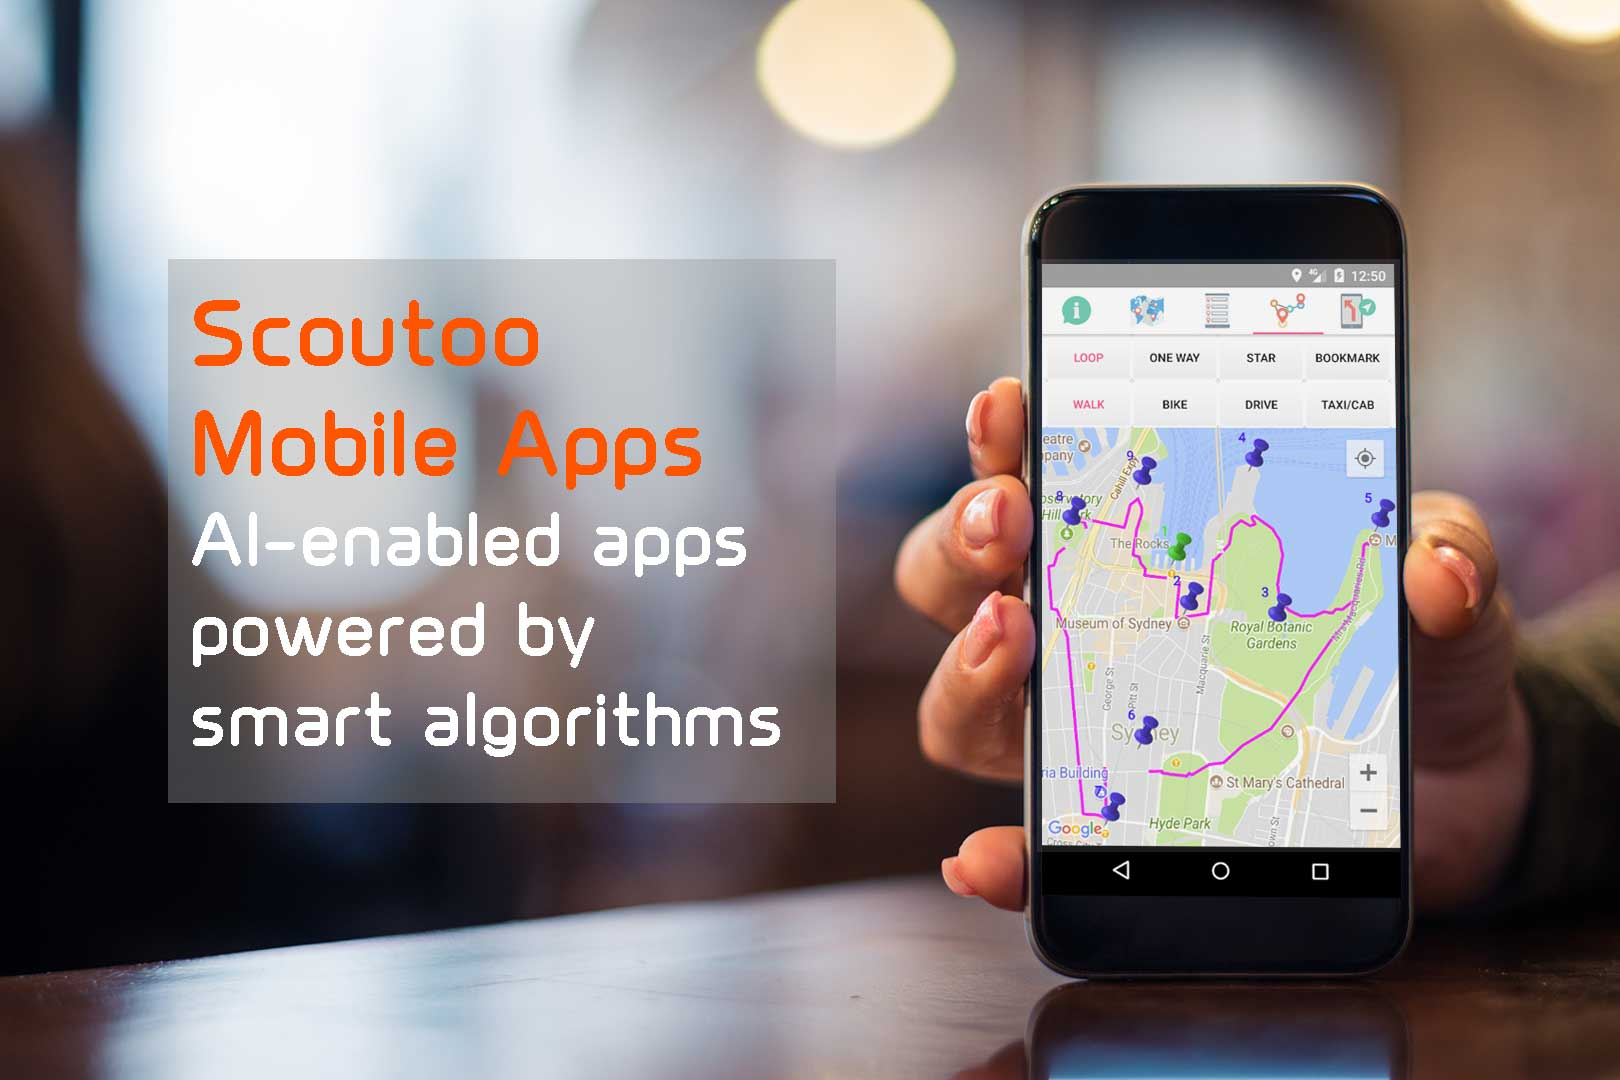 Scoutoo Mobile Apps